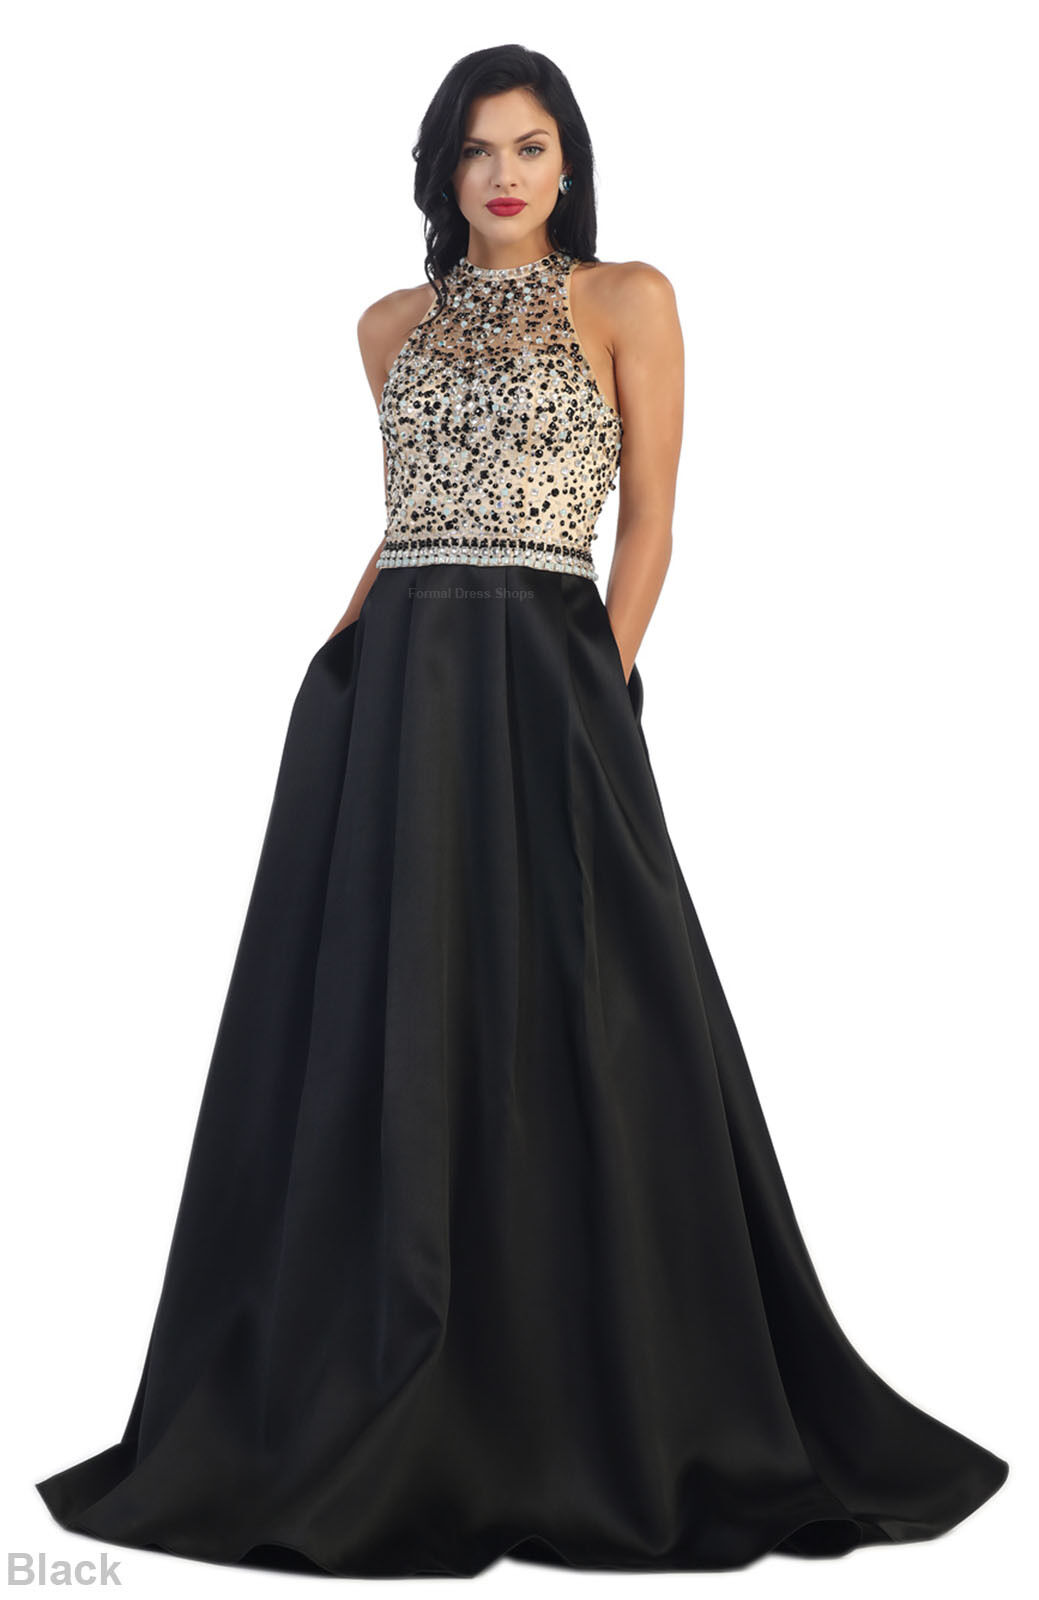 SALE   NEW RED CARPET EVENING LONG FORMAL GOWN SPECIAL OCCASION PROM QUEEN DRESS